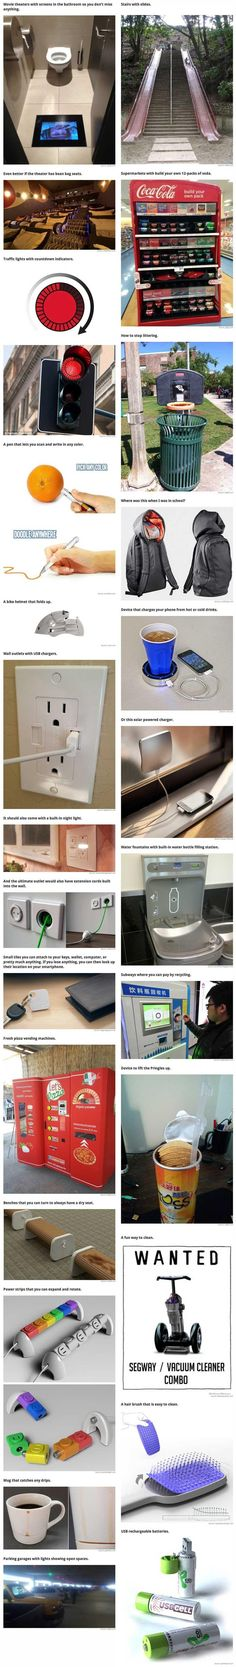 Silly Likes - 26 clever innovations that totally need to be everywhere already